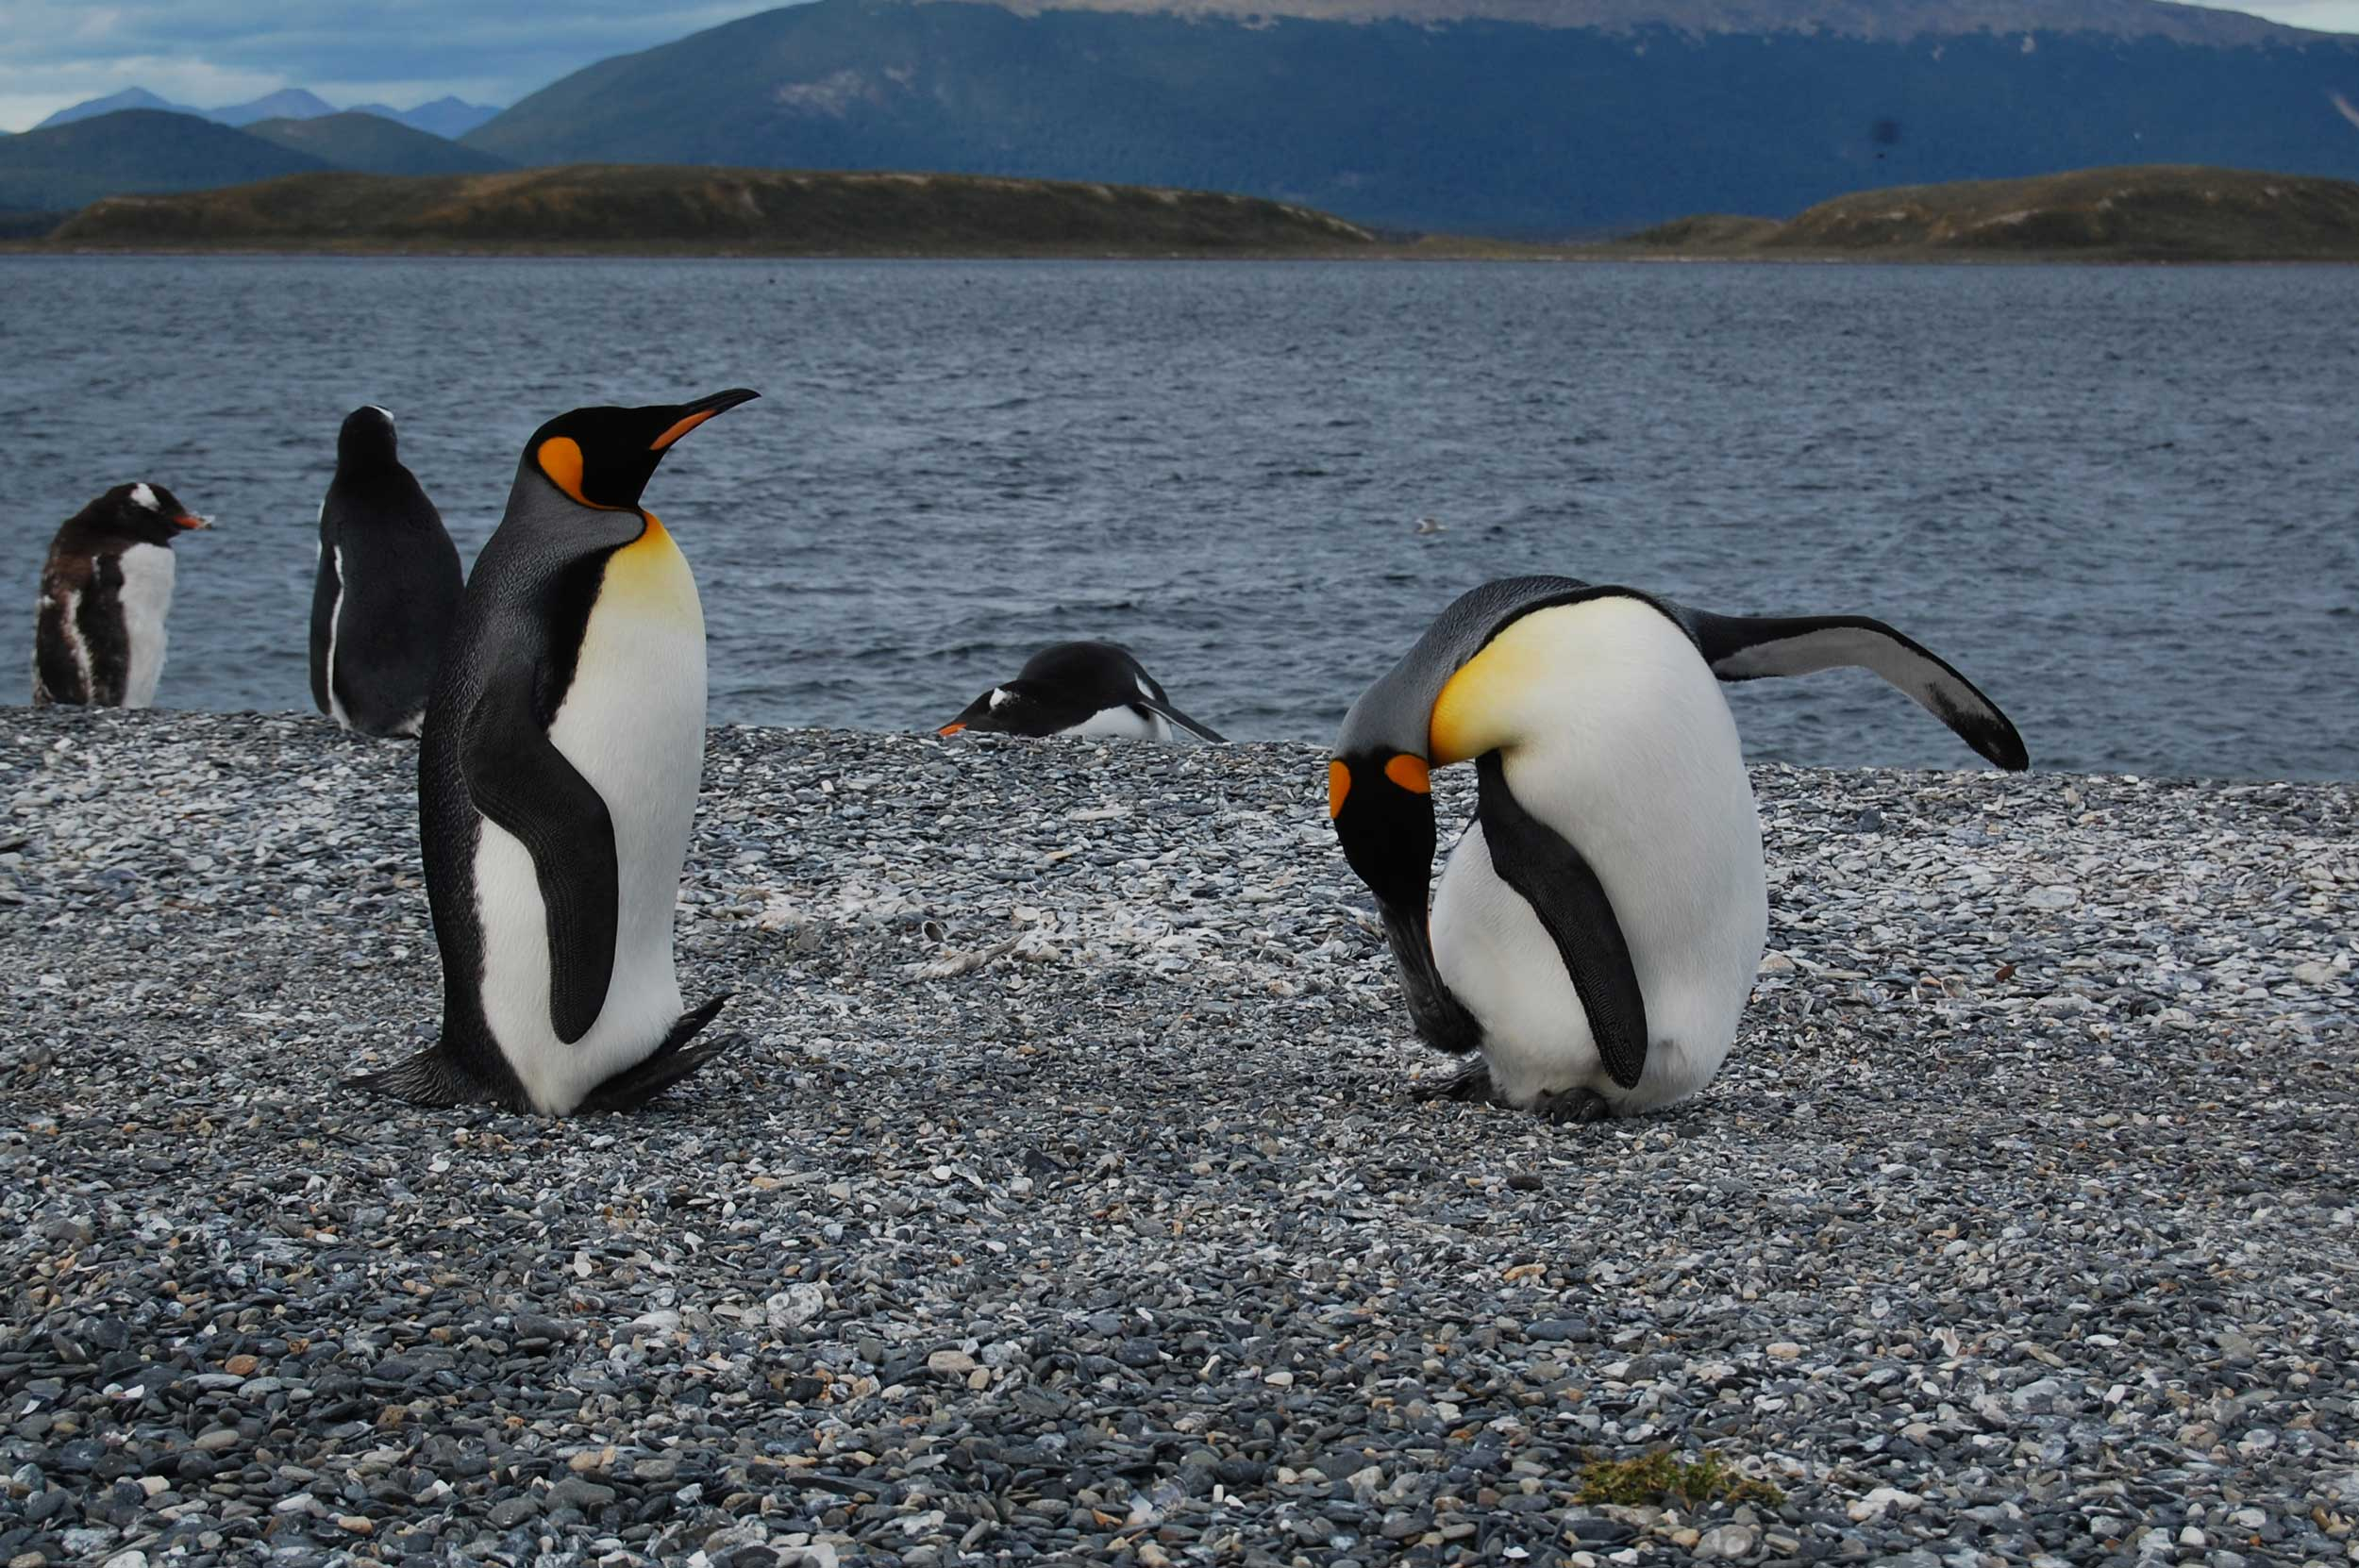 Two King penguins at Martillo Island. One scratching himself while an other one looks at him.